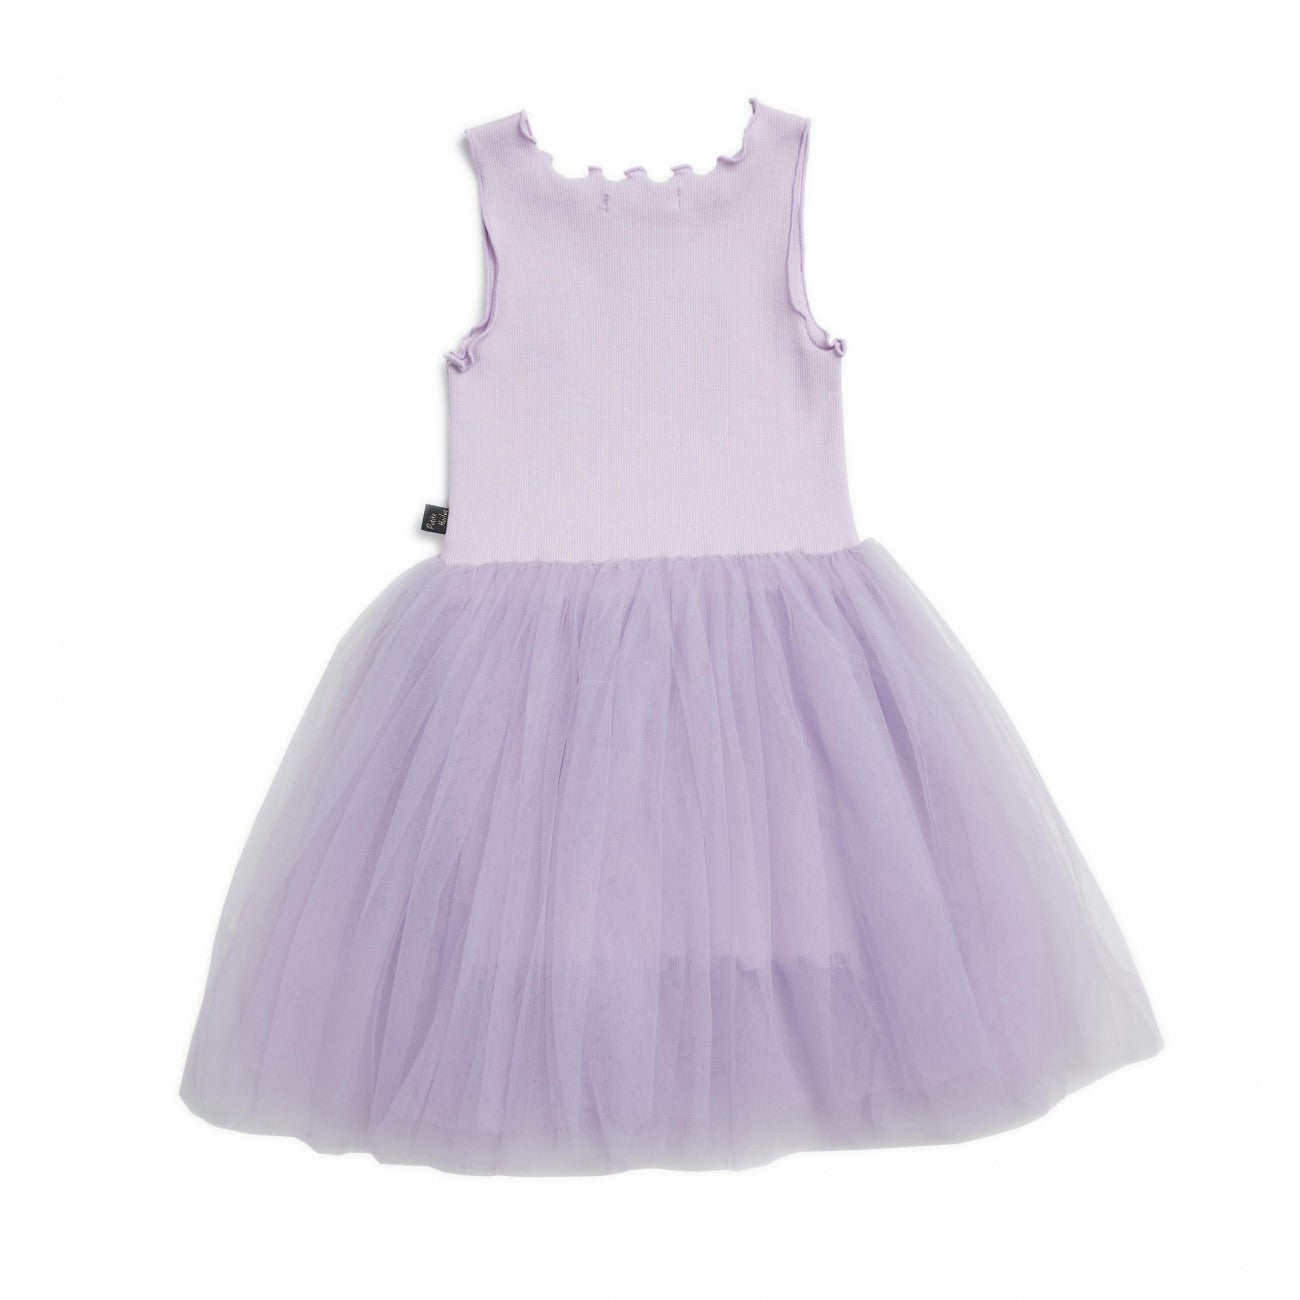 PH HEART TUTU DRESS - Lavender